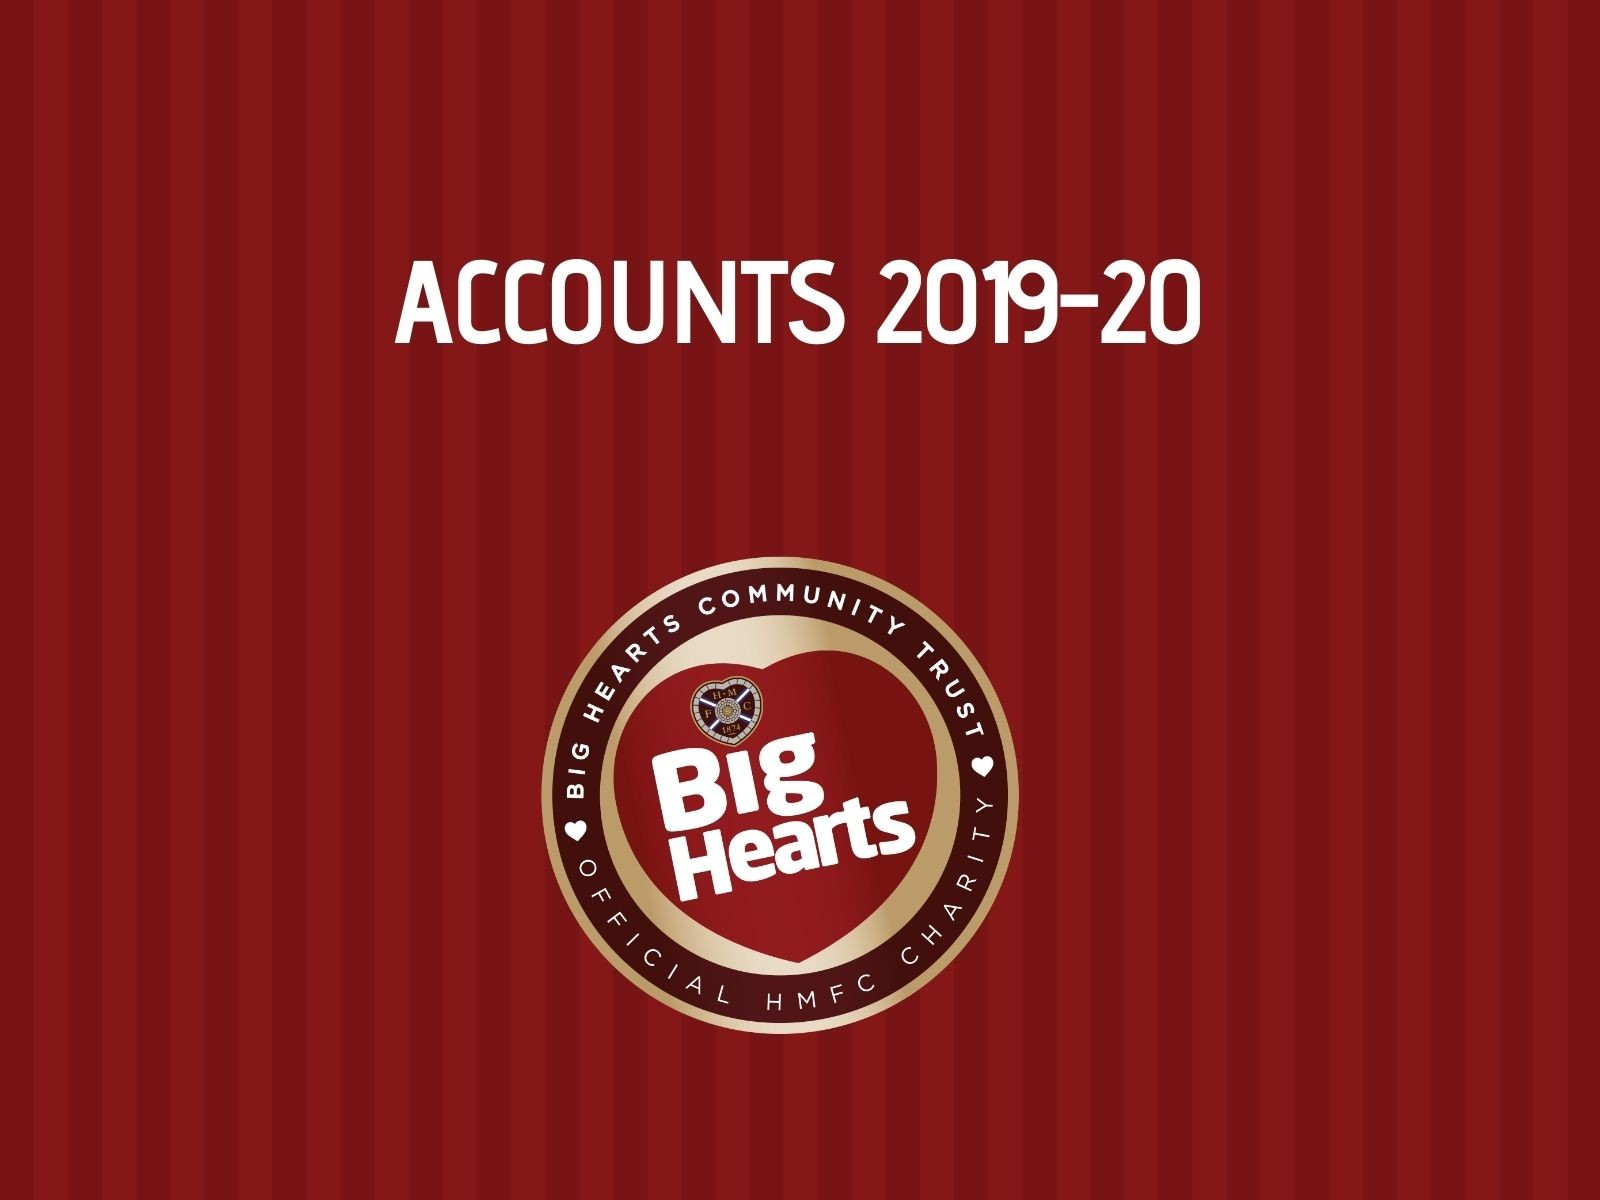 » FINANCIAL POSITION: BIG HEARTS ACCOUNTS 2019-20 NOW AVAILABLE